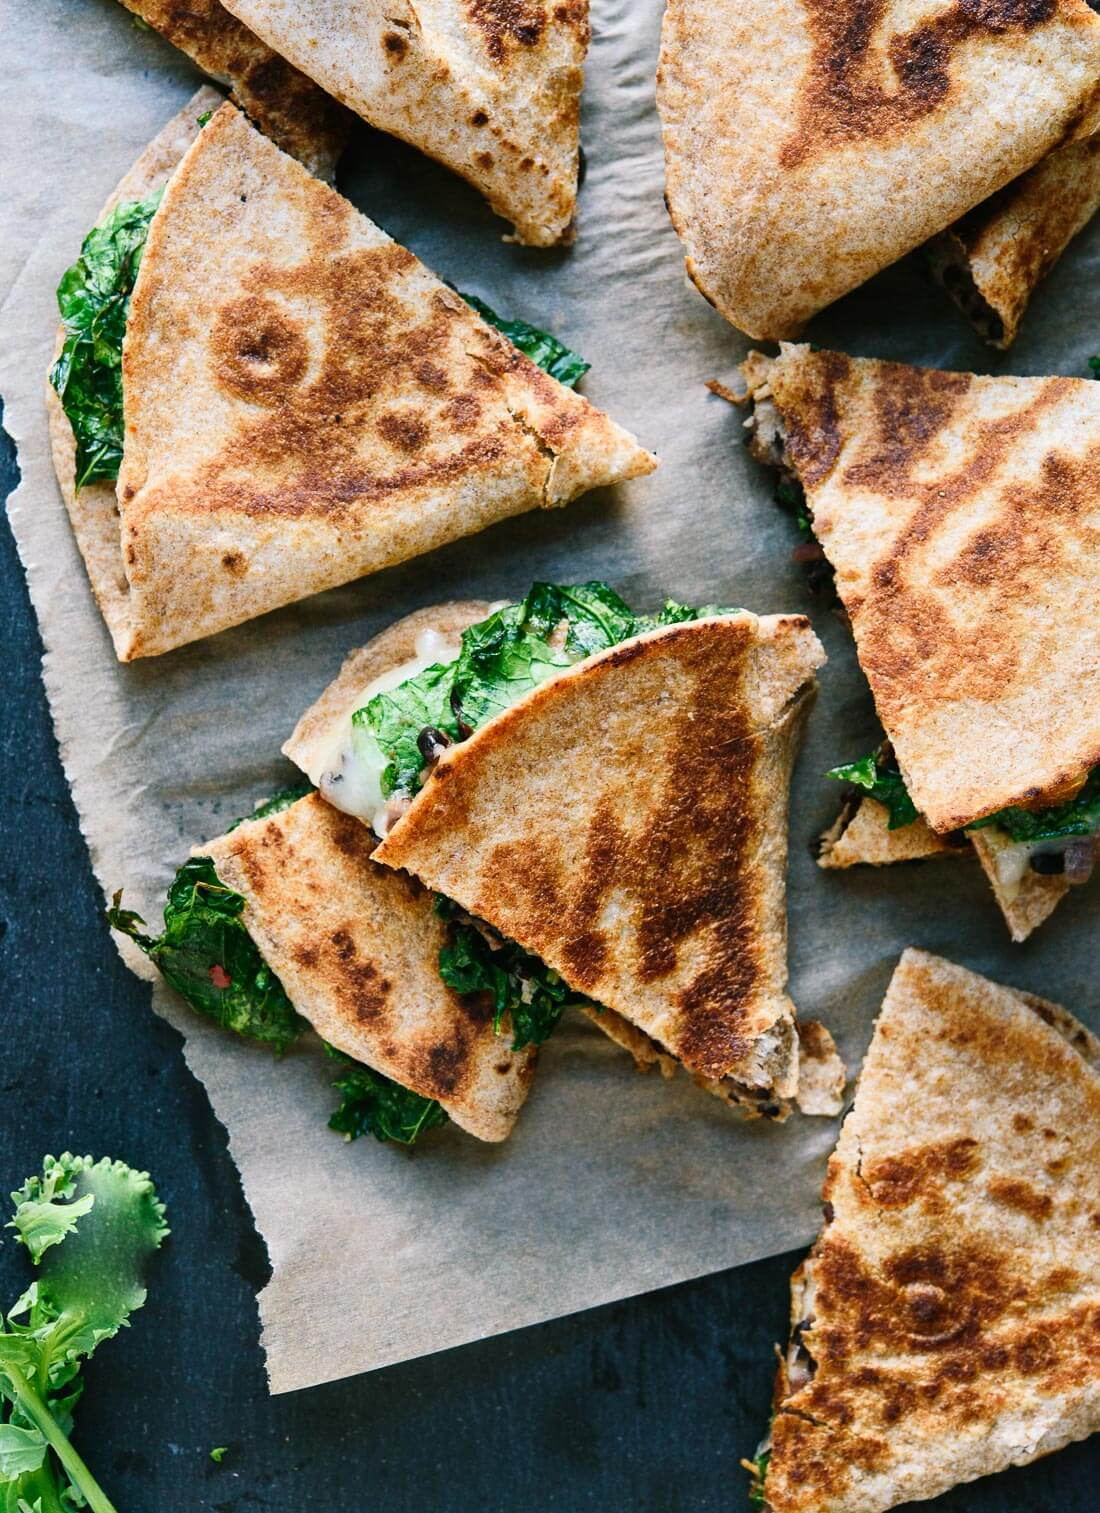 Crispy quesadillas stuffed with broccoli rabe and black beans! cookieandkate.com